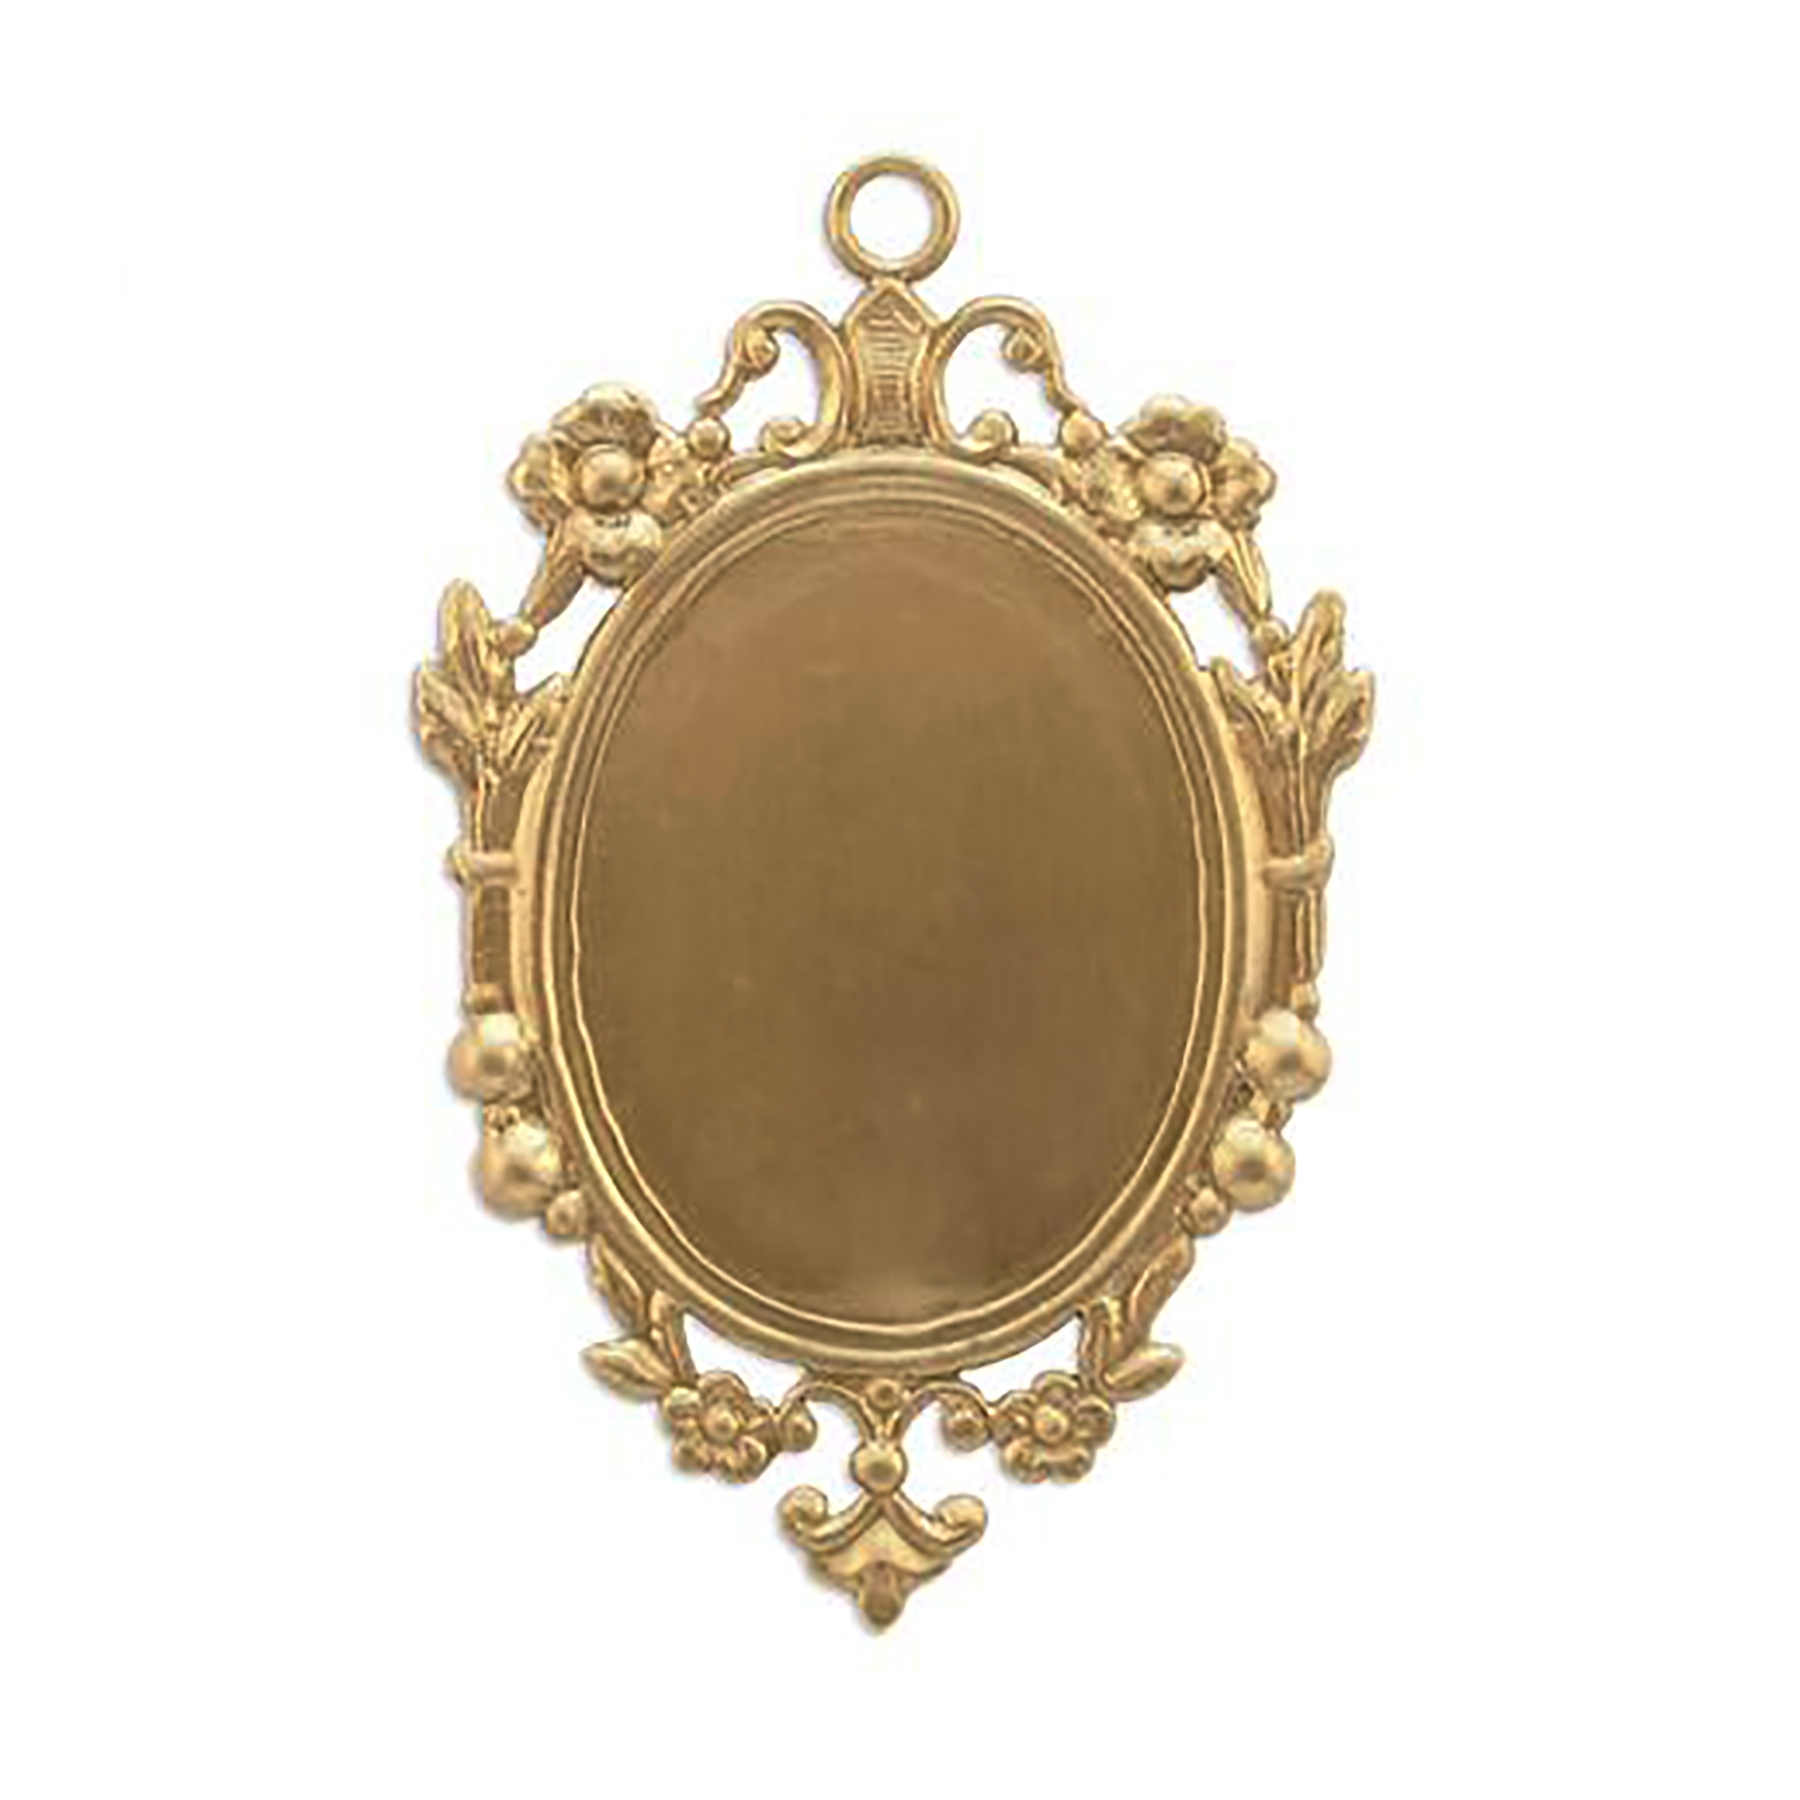 Victorian floral pendant mount, raw brass, unplated brass, mount, pendant, floral border, brass, Victorian mount, Victorian border, 55x36mm, pendant mount, floral pendant mount, brass stamping, US made, jewelry making, jewelry supplies, vintage, 09269